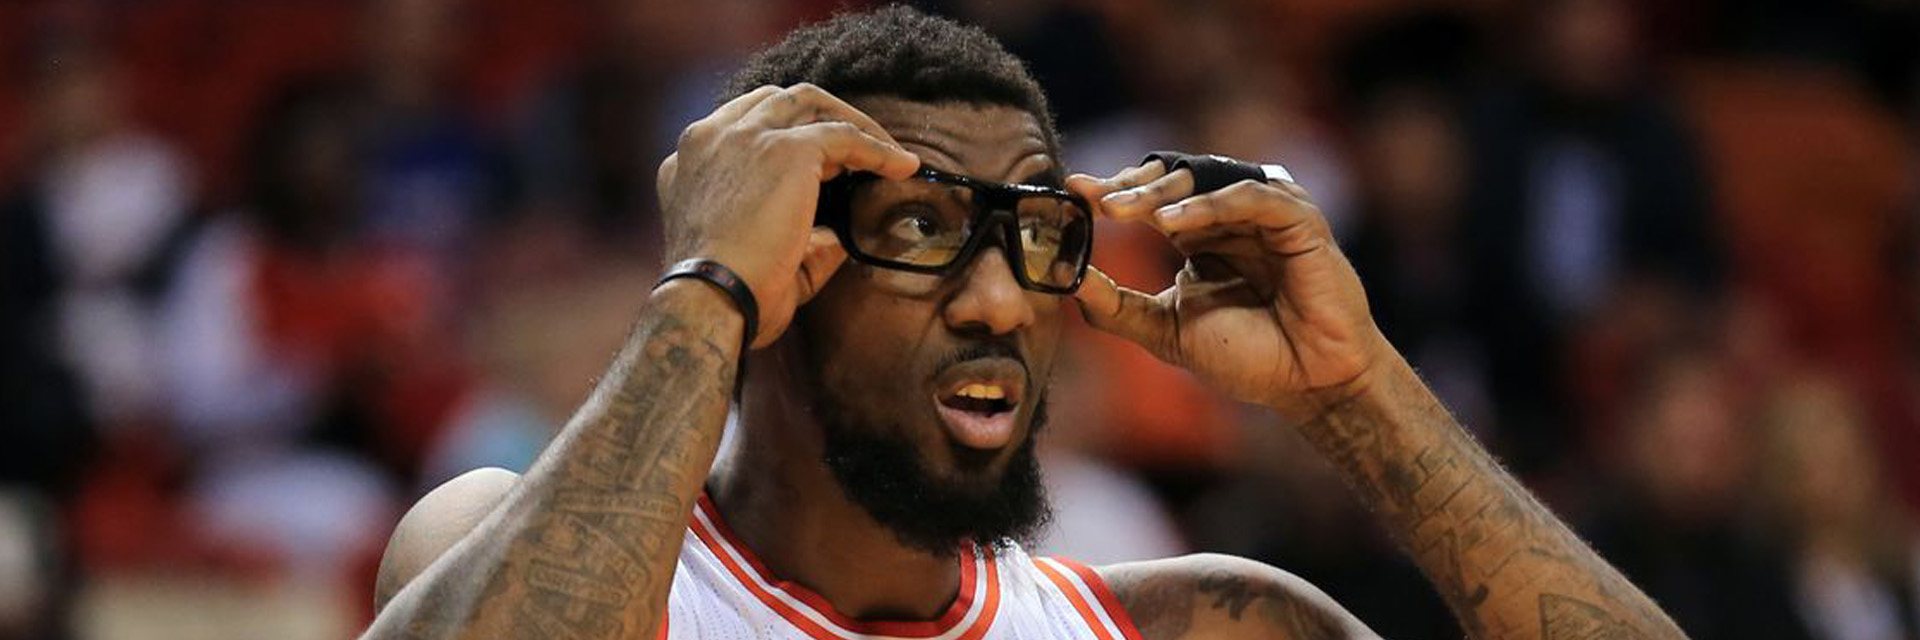 basketball goggles protective safety any